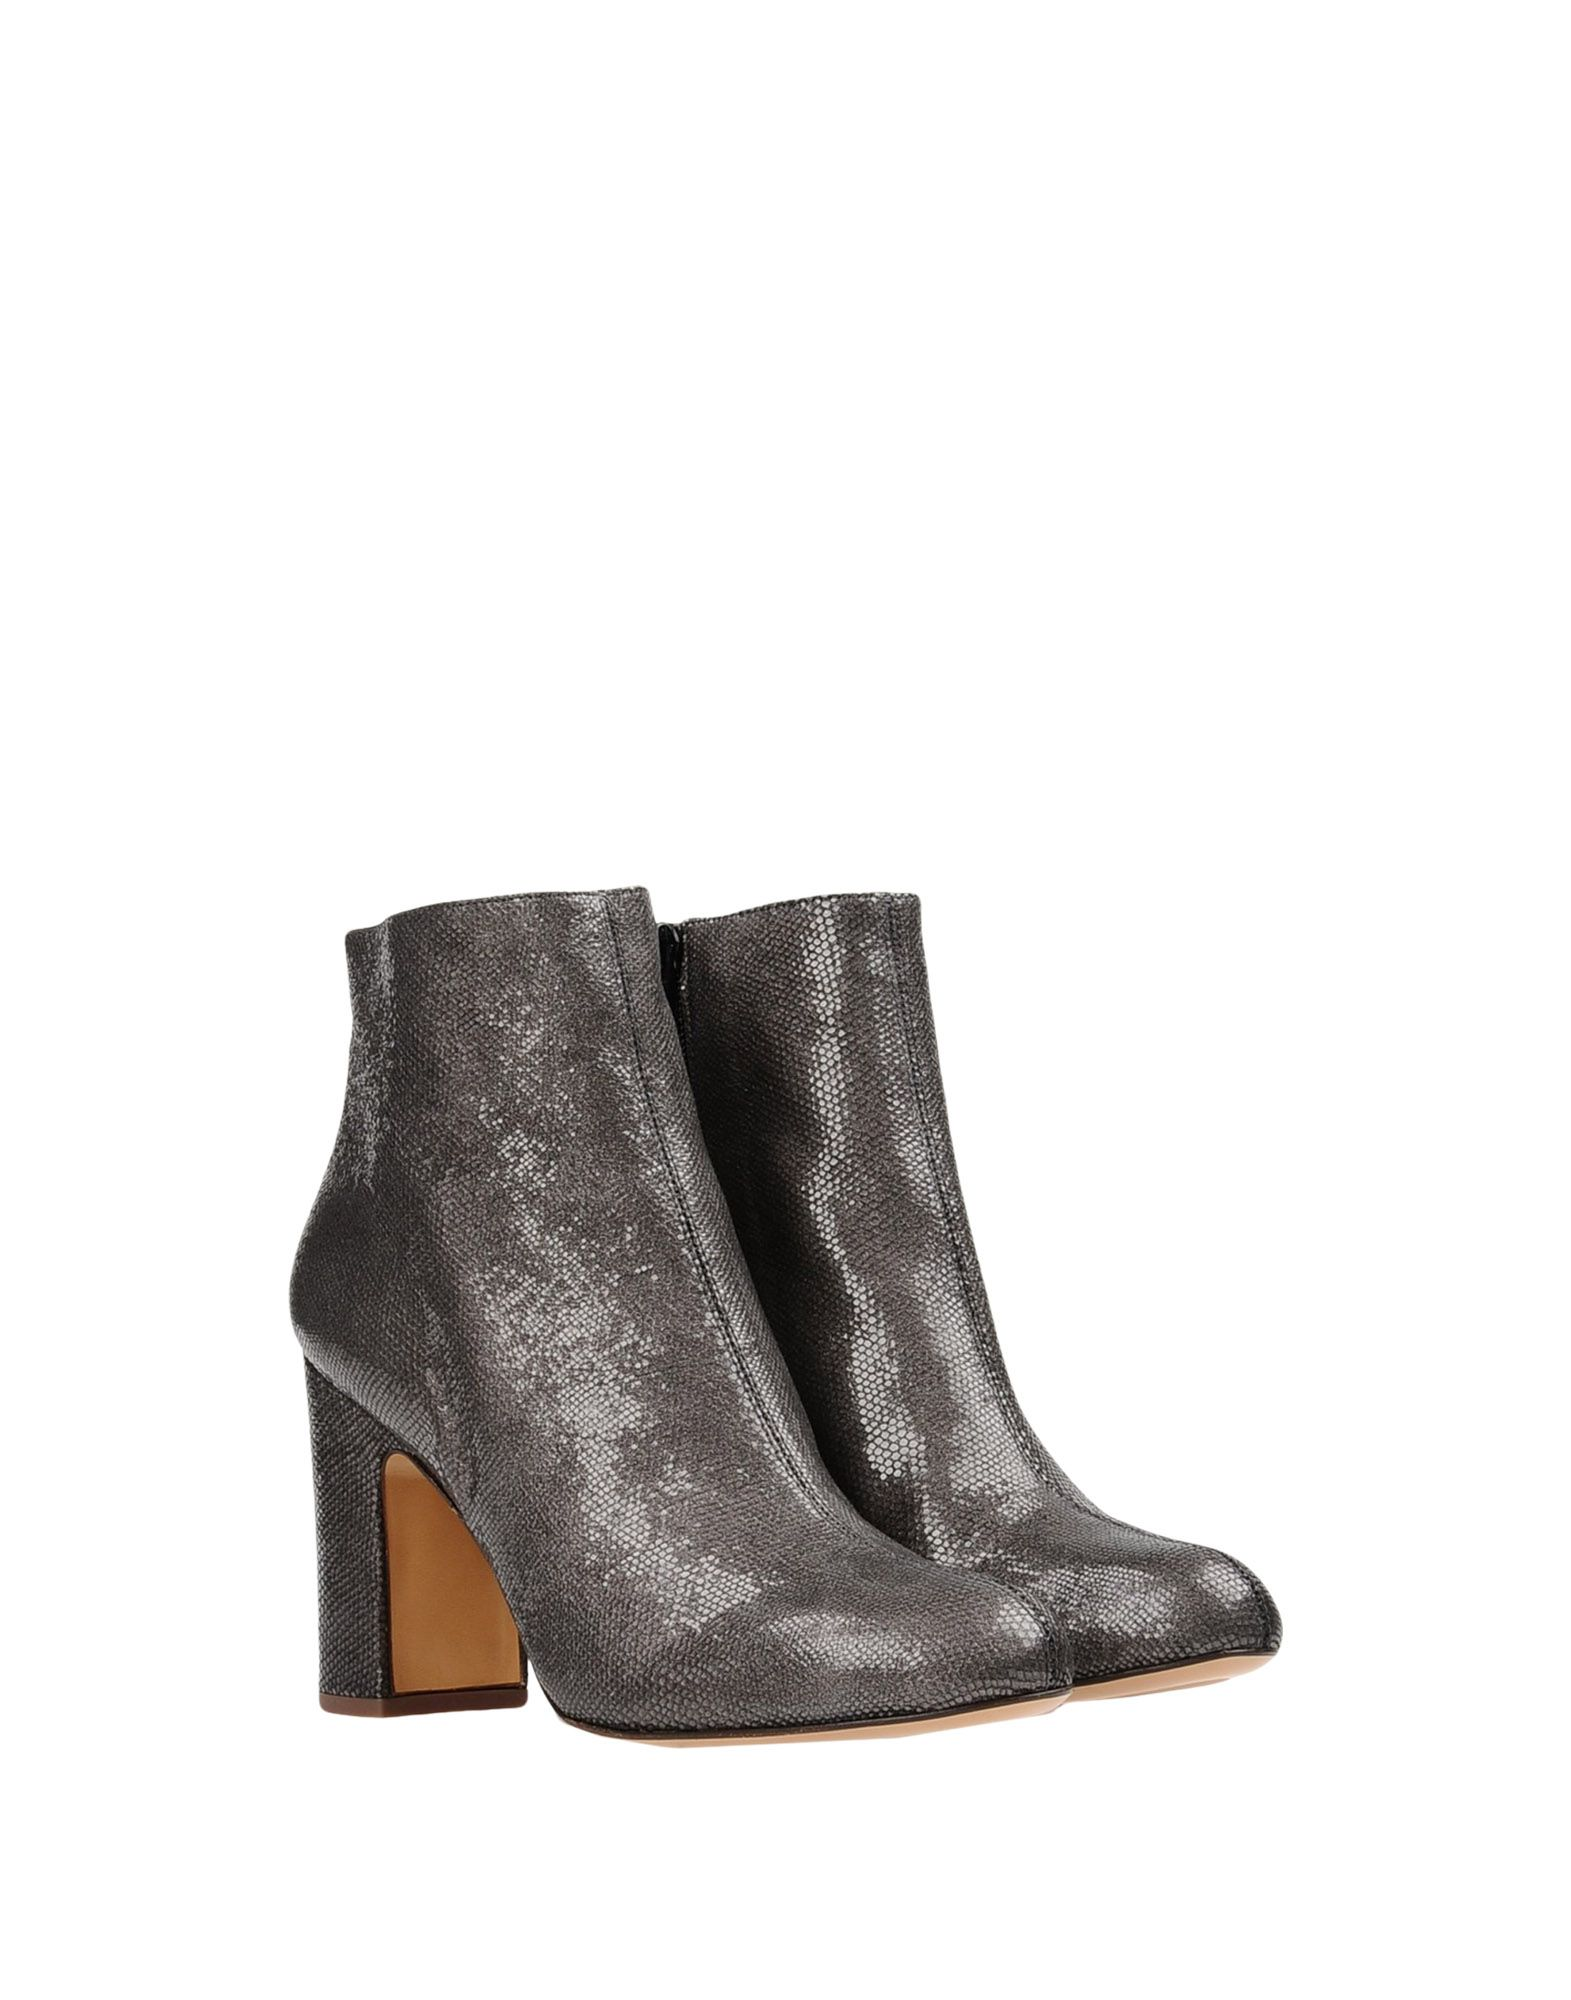 Bottine Chie By Chie Mihara Femme - Bottines Chie By Chie Mihara sur